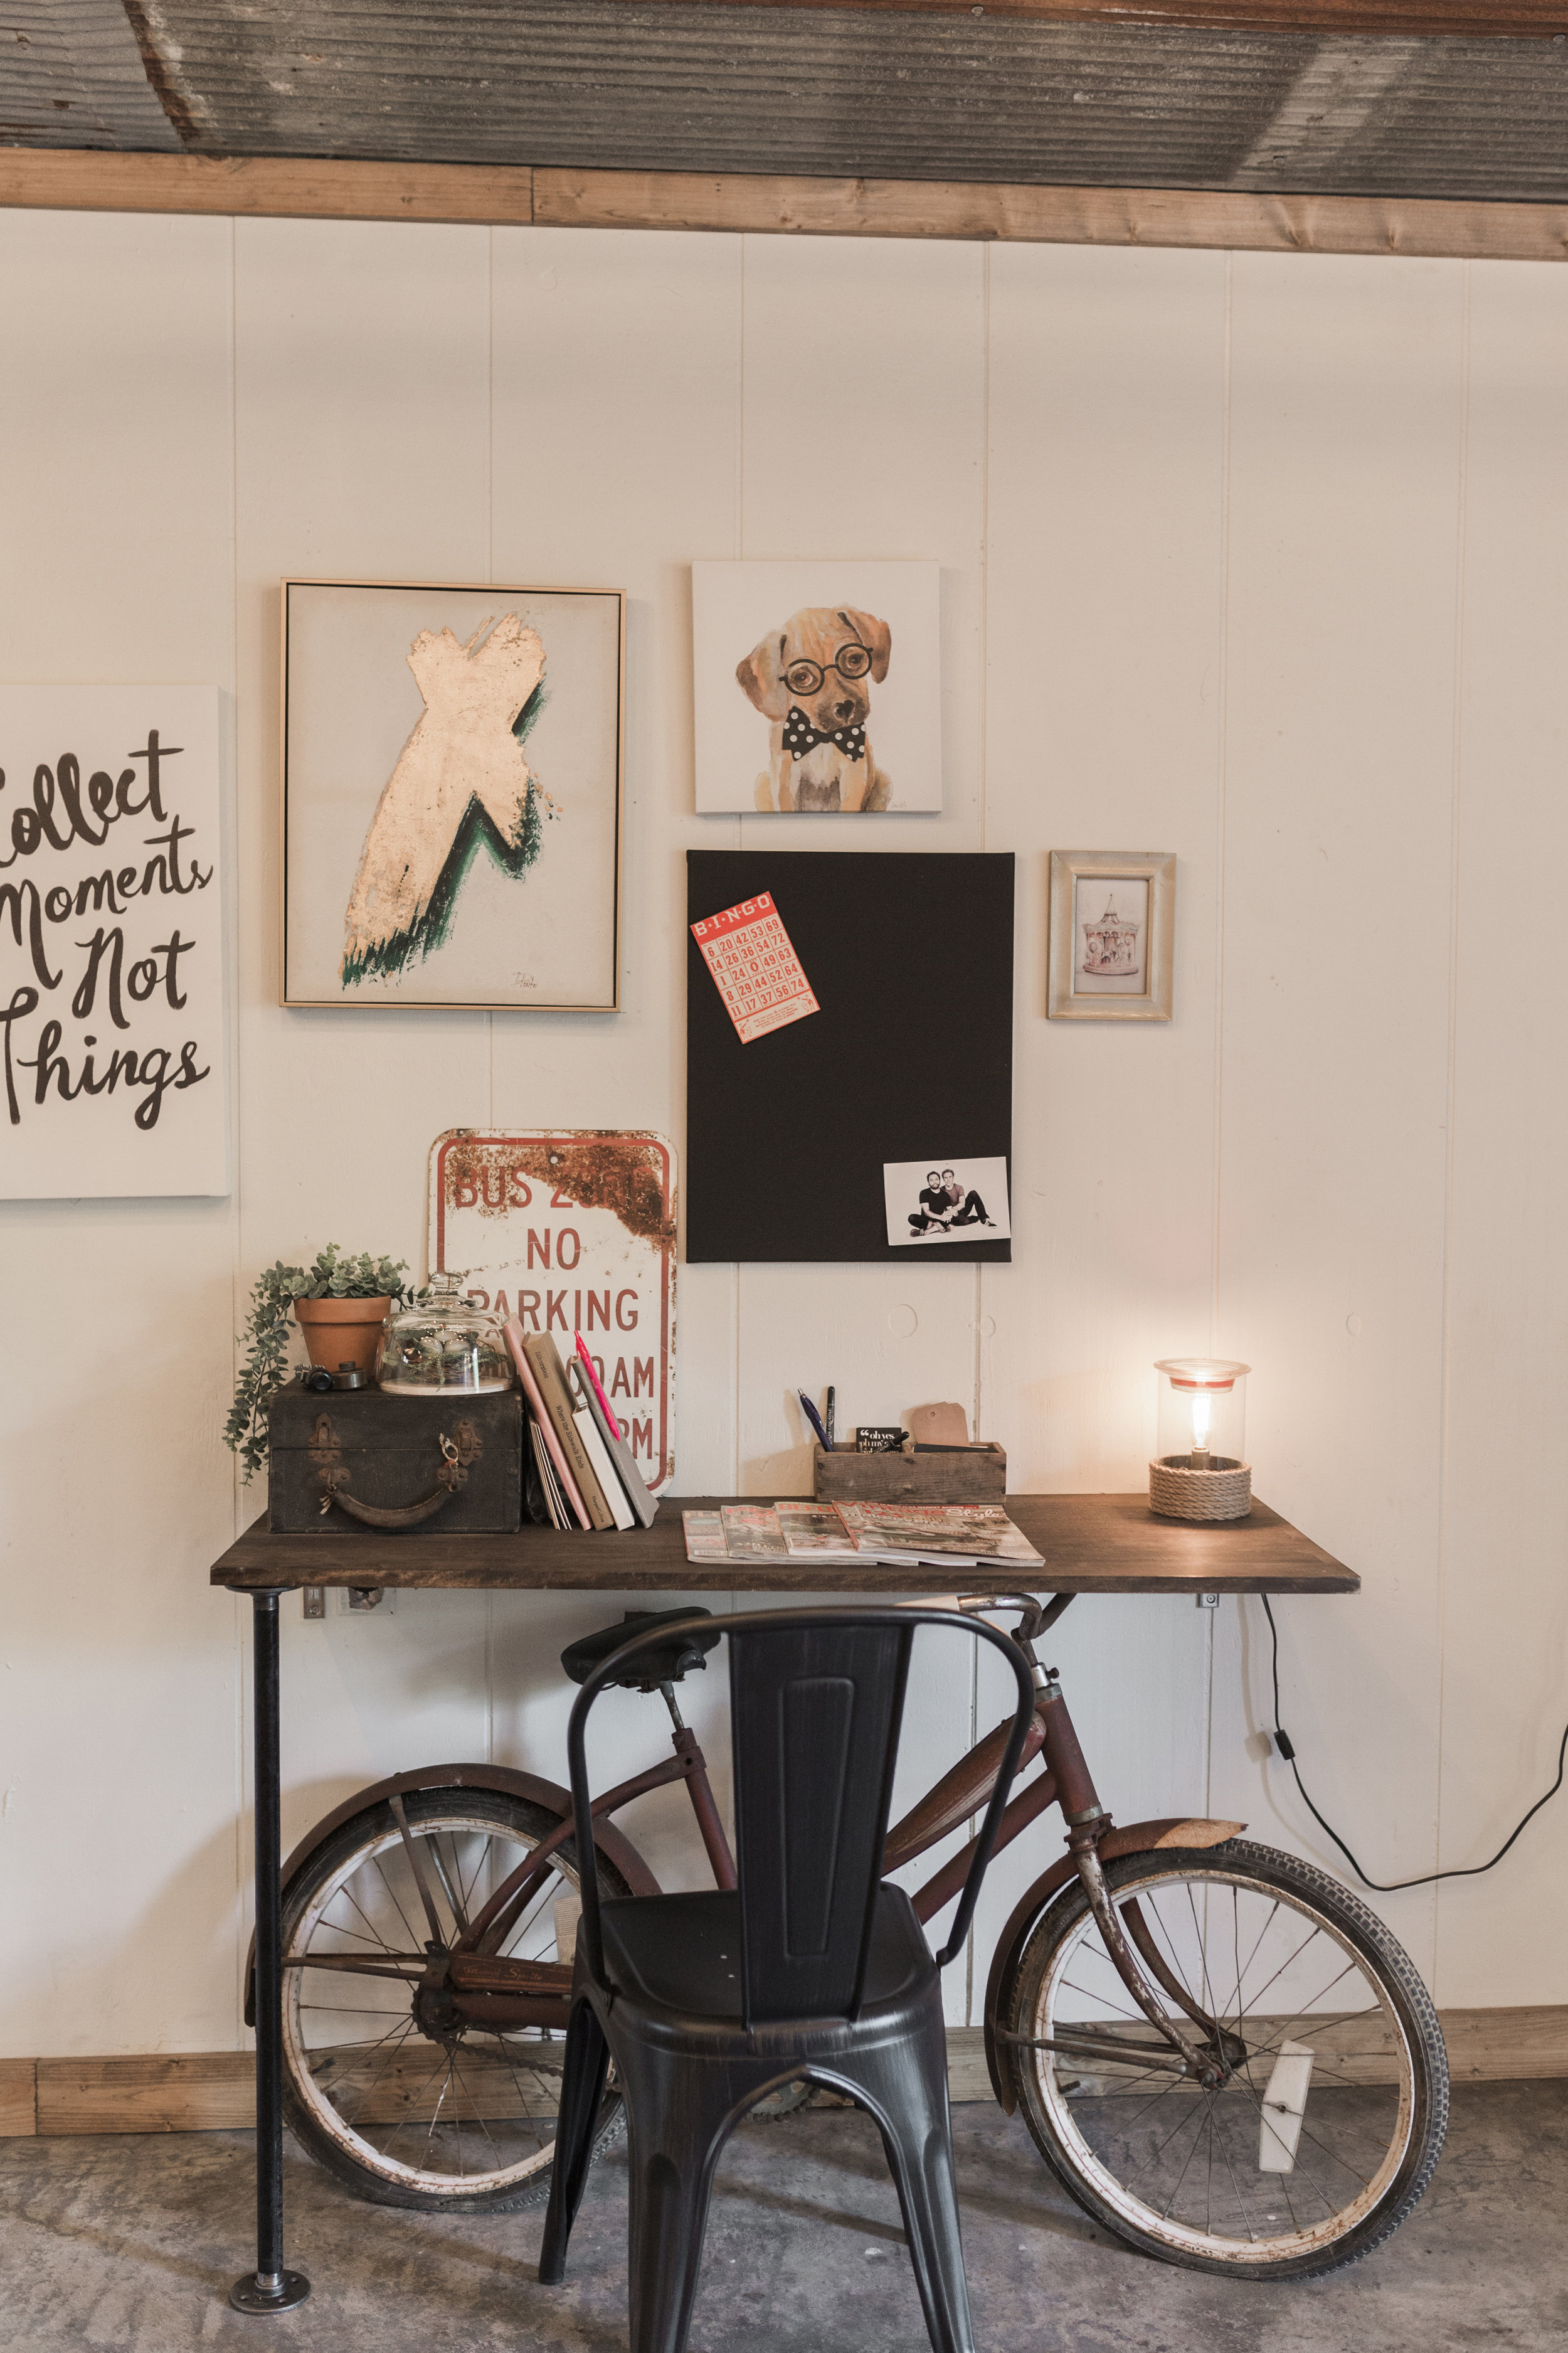 I knew I wanted to turn an old bicycle into a desk and this worked out perfect. The top just sits right on top of the handlebars and has the pipe leg for additional support.